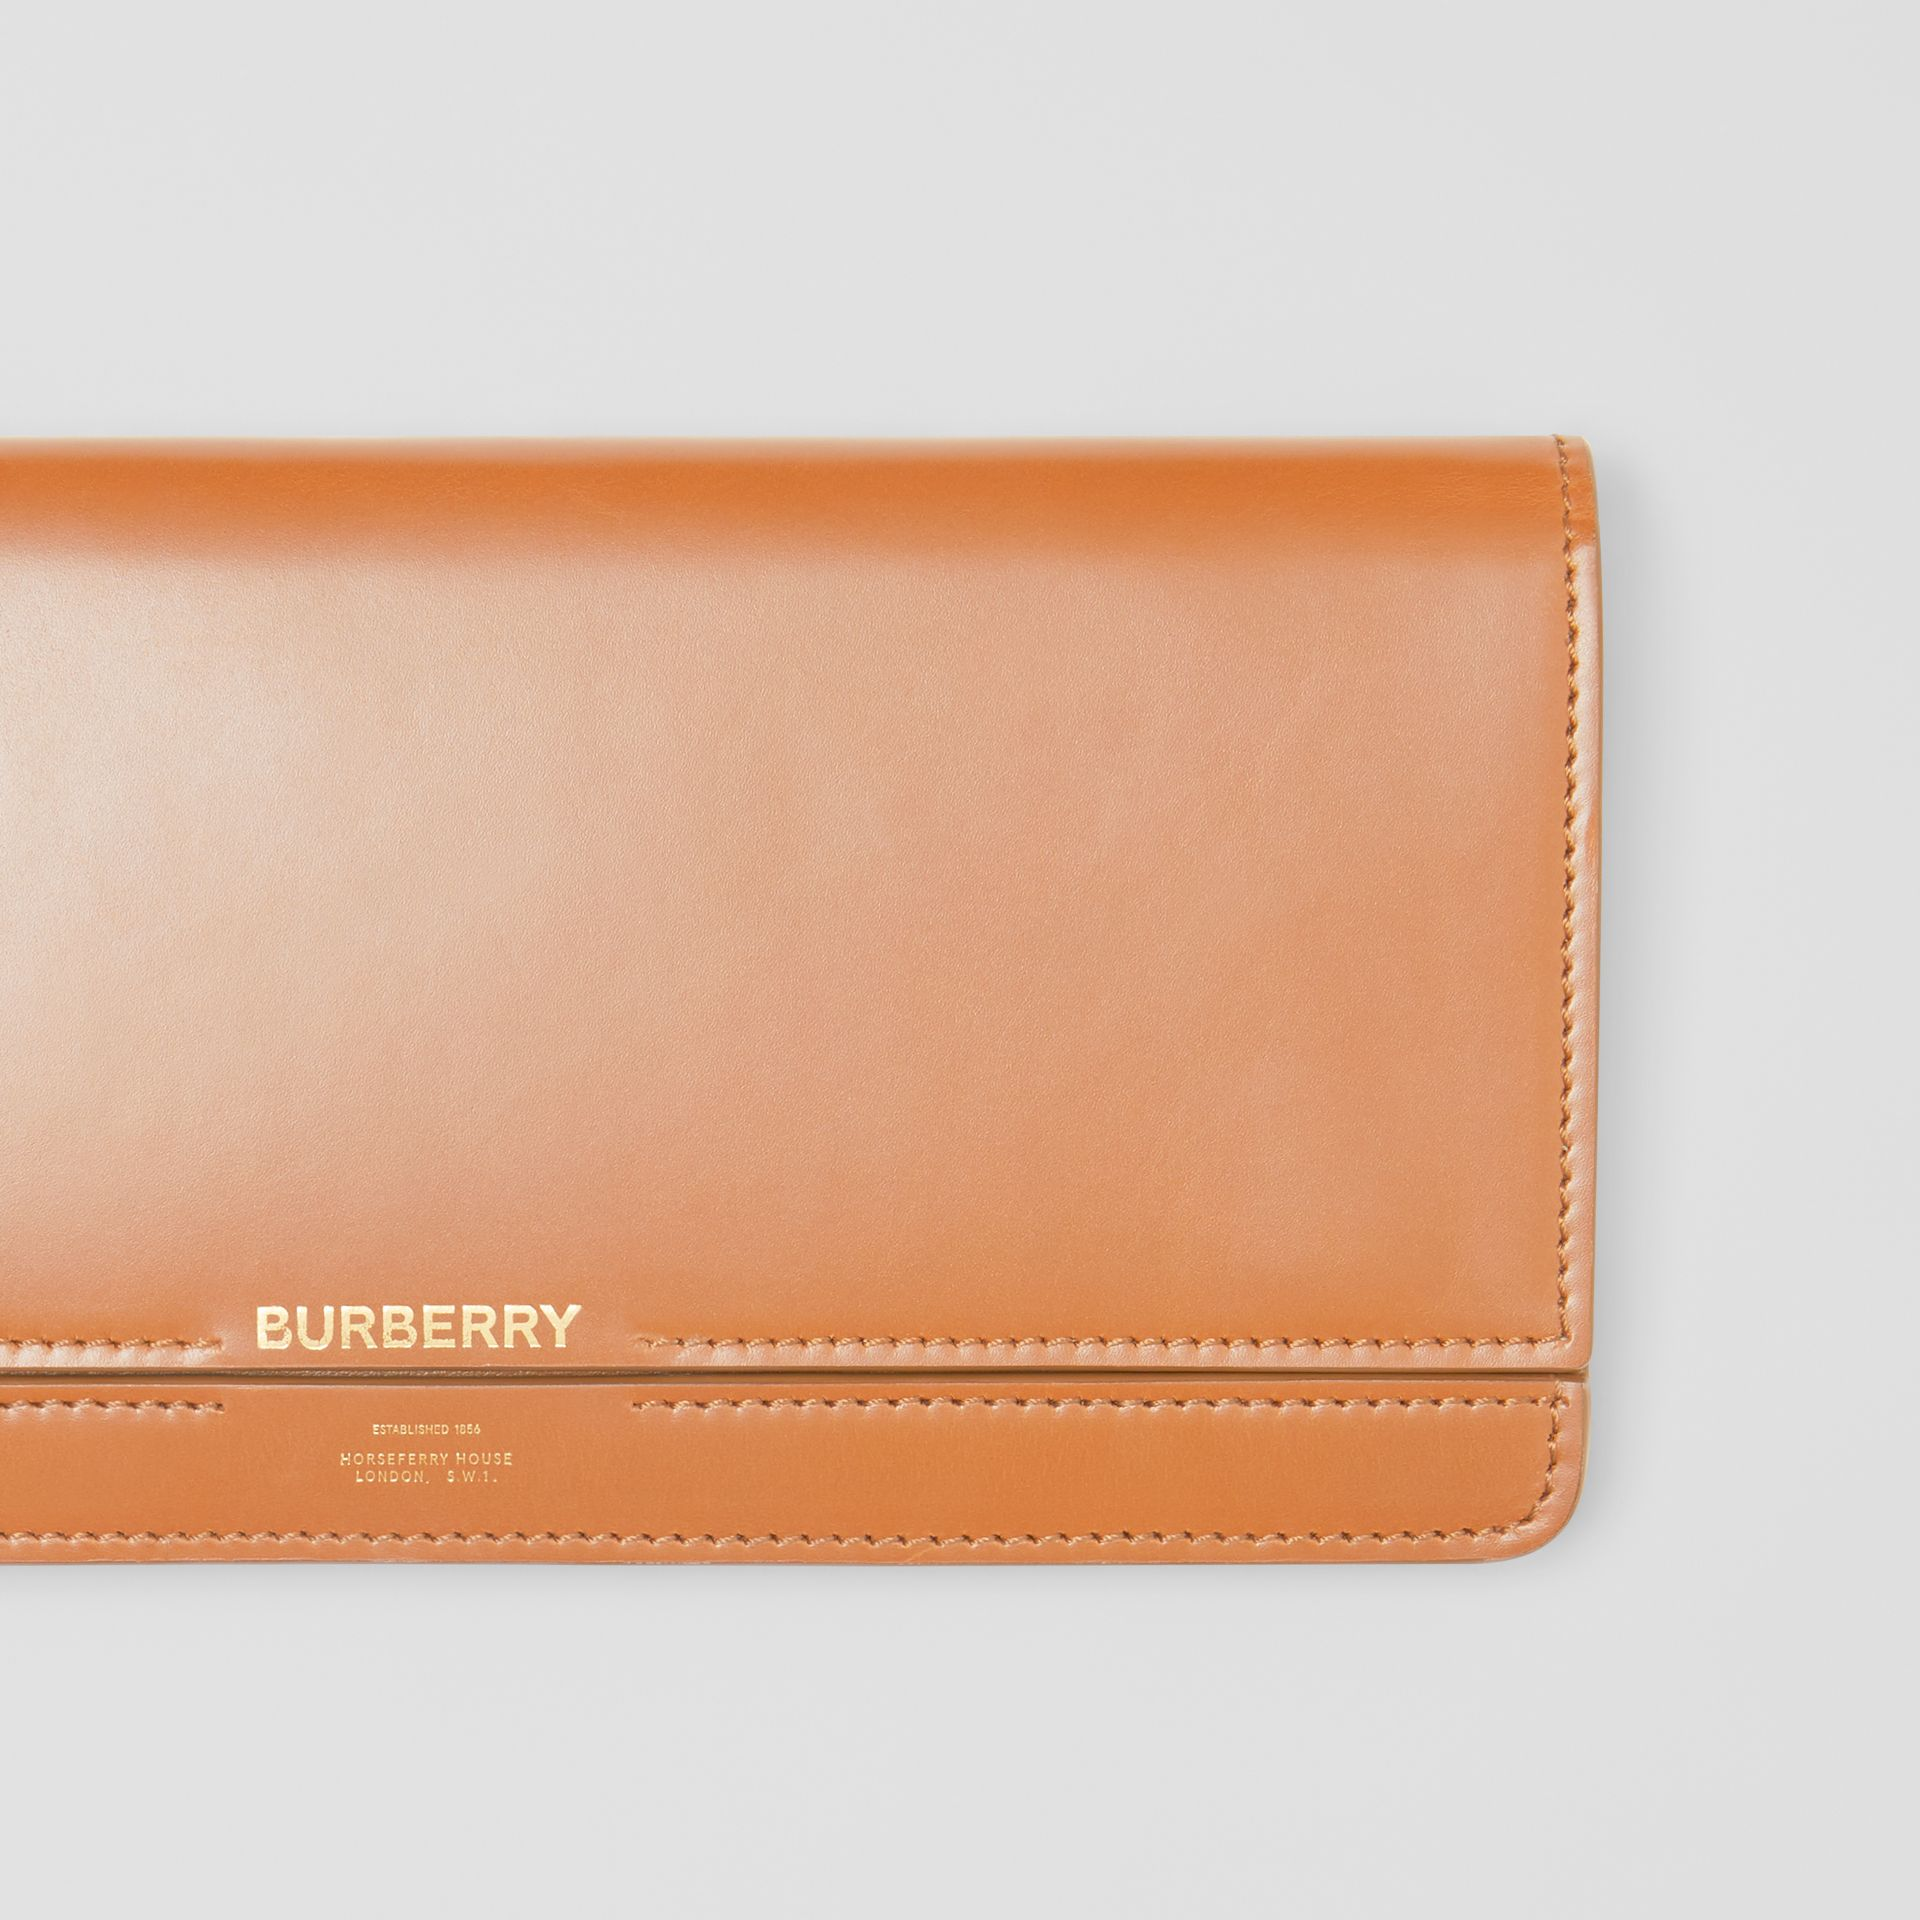 Horseferry Print Leather Bag with Detachable Strap in Nutmeg - Women | Burberry Singapore - gallery image 1